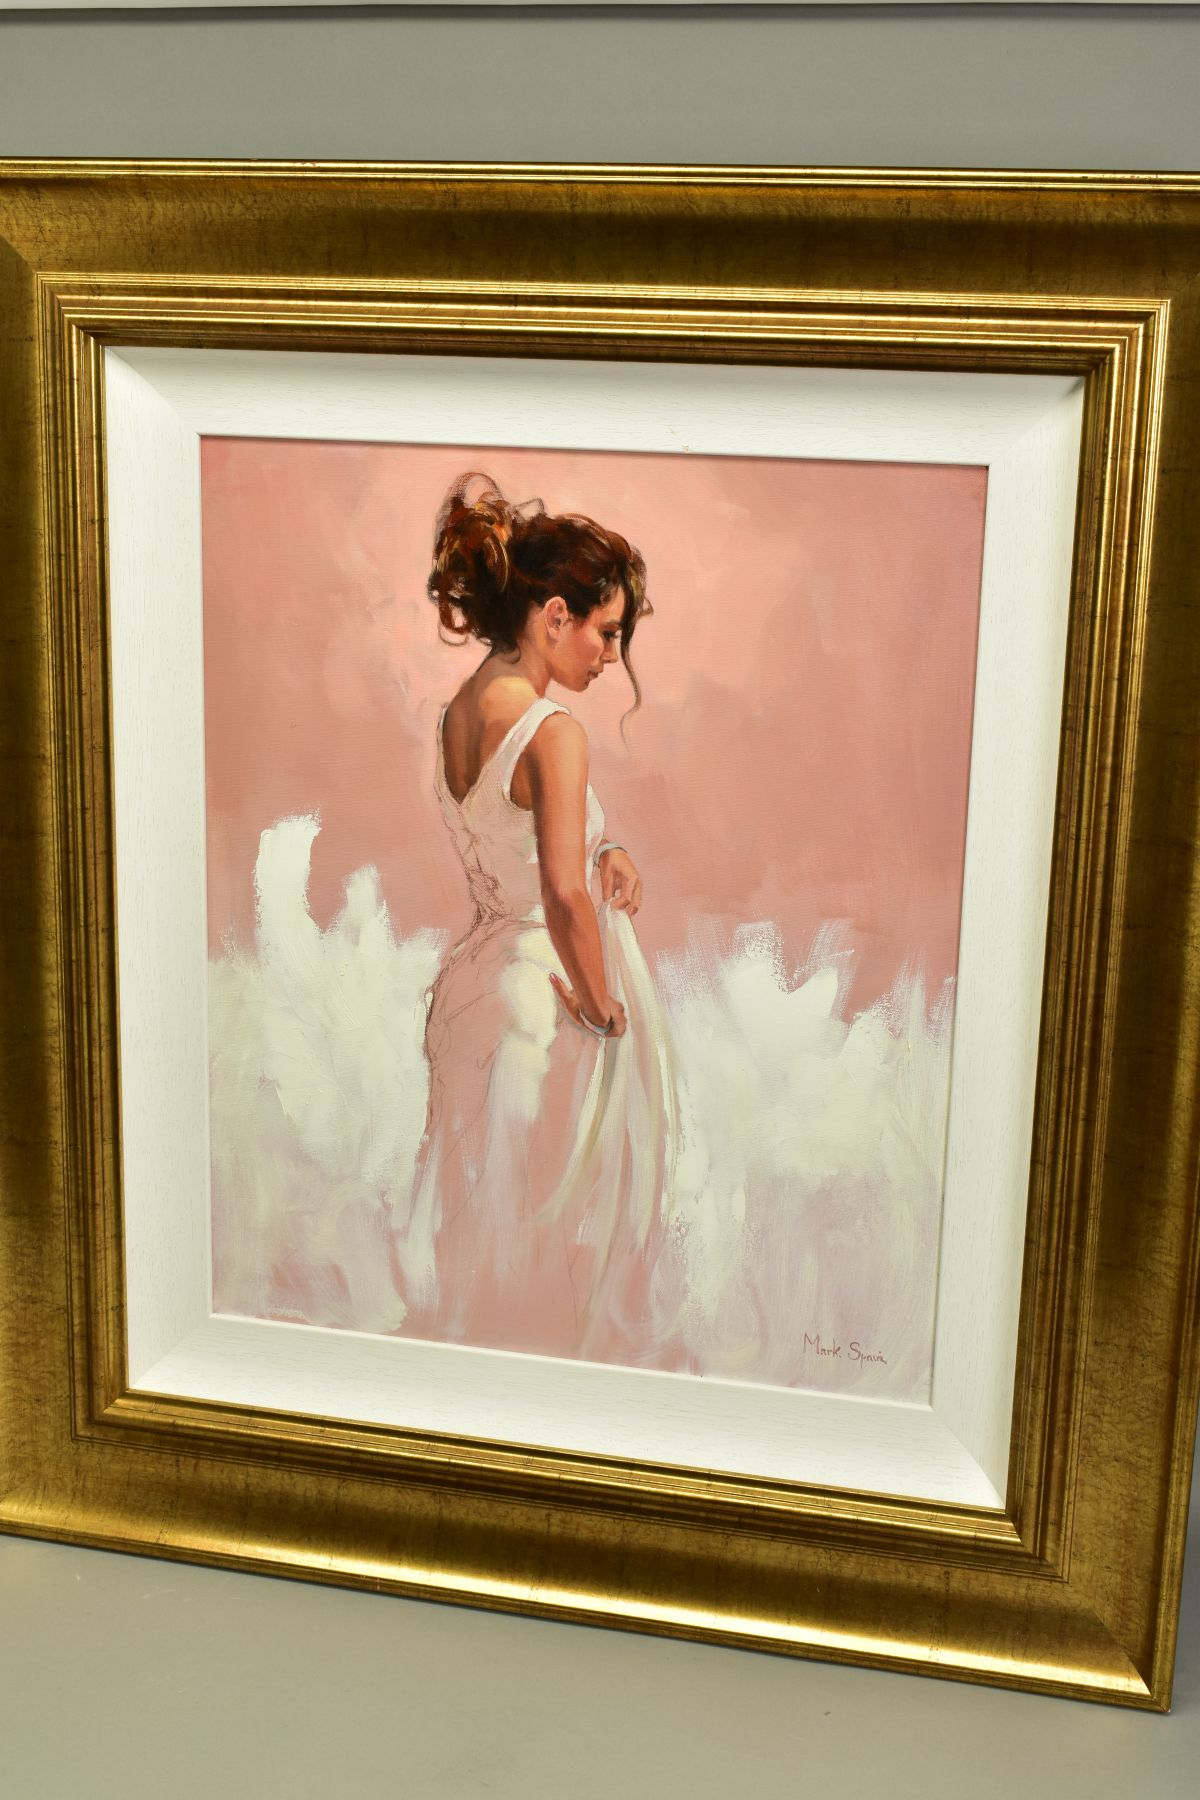 MARK SPAIN (BRITISH CONTEMPORARY), 'Woman In White', a female figure wearing a white dress, signed - Image 5 of 7